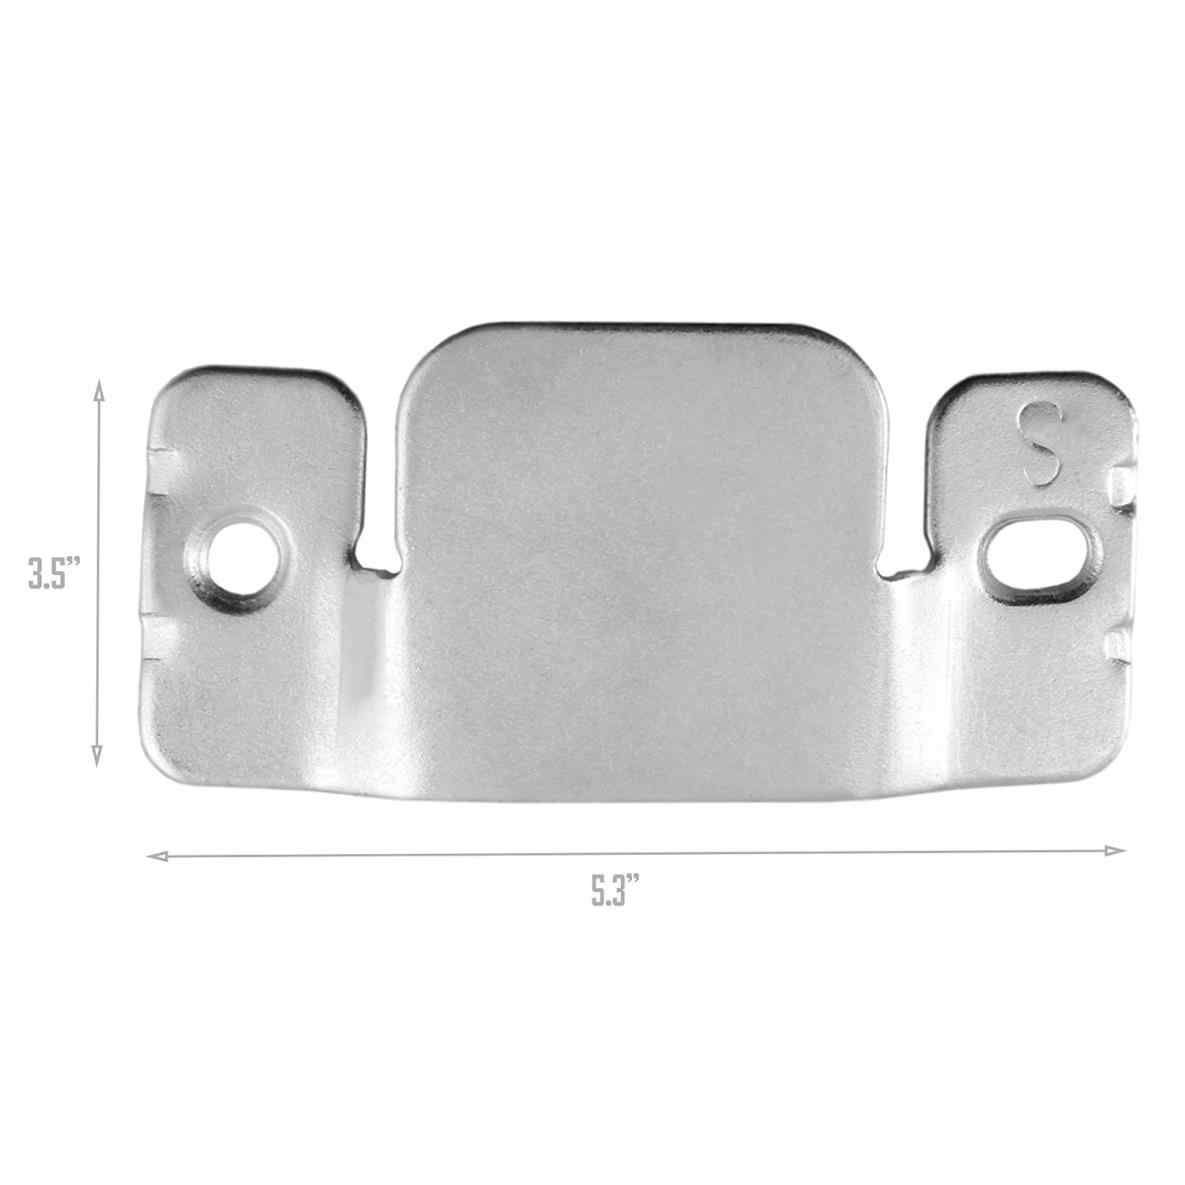 Attachment Hardware Interlocking Connector Bracket With New